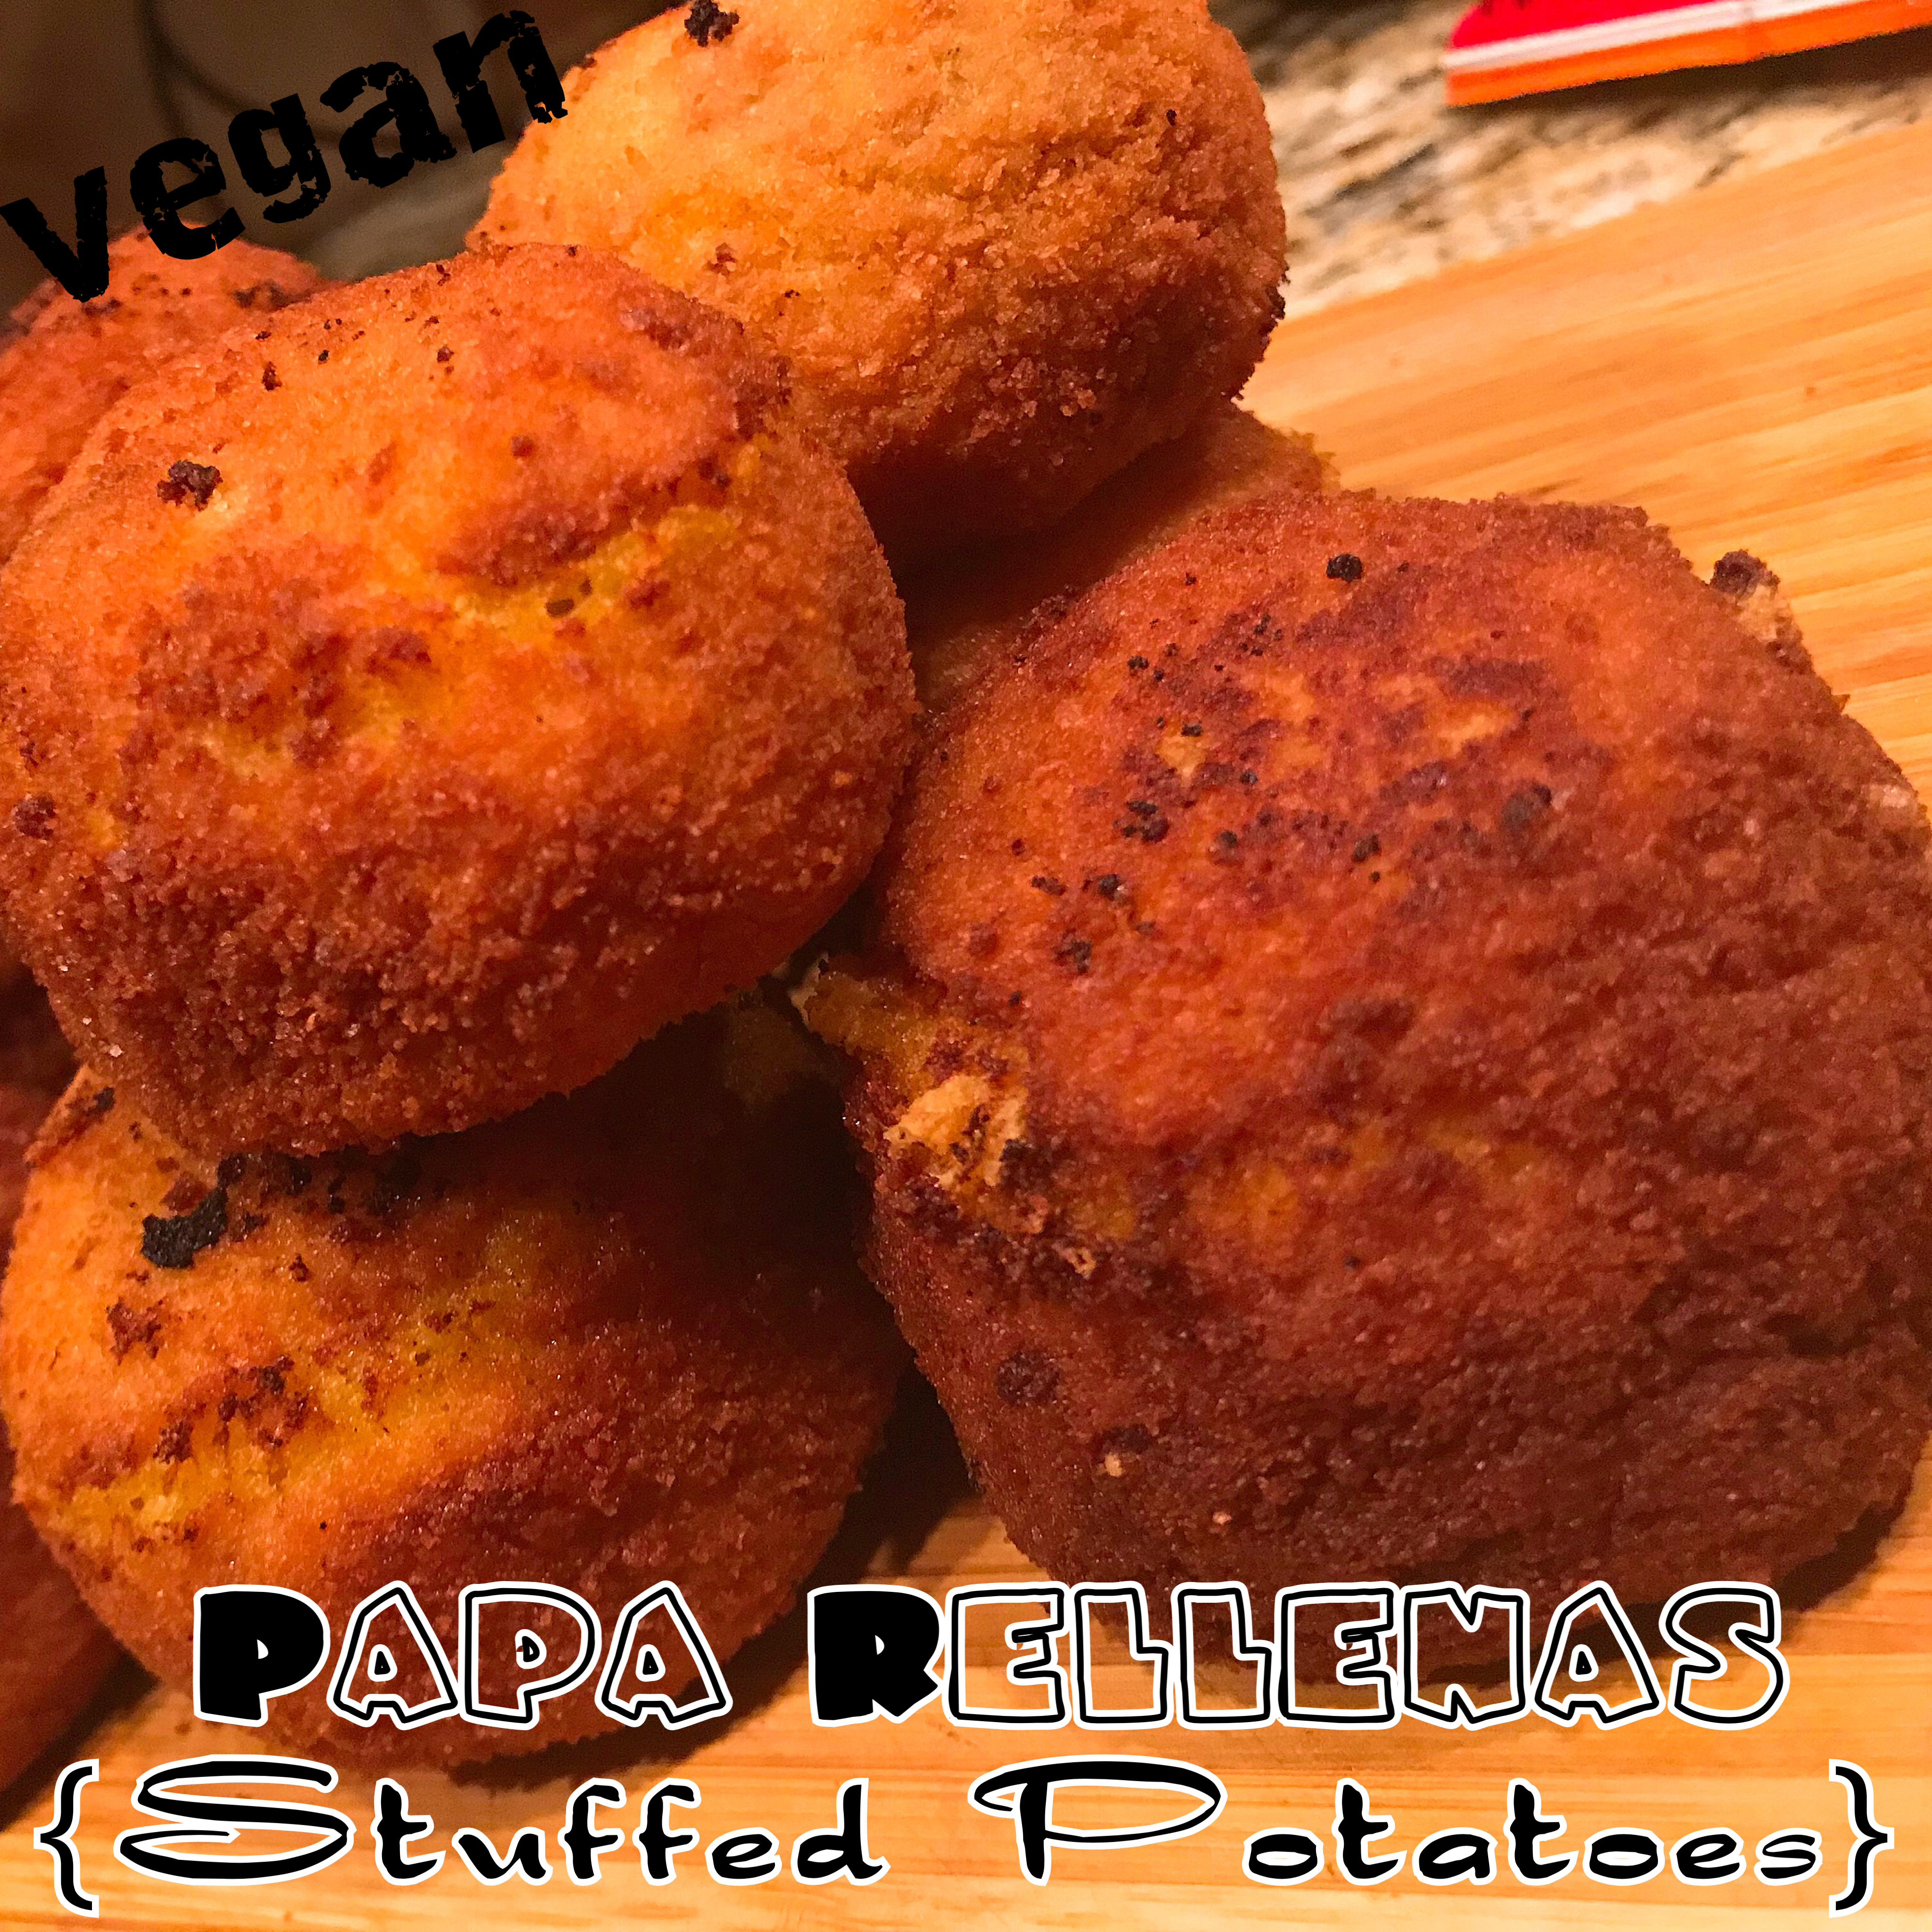 Protected: Vegan Papa Rellenas {Fried Stuffed Potatoes}